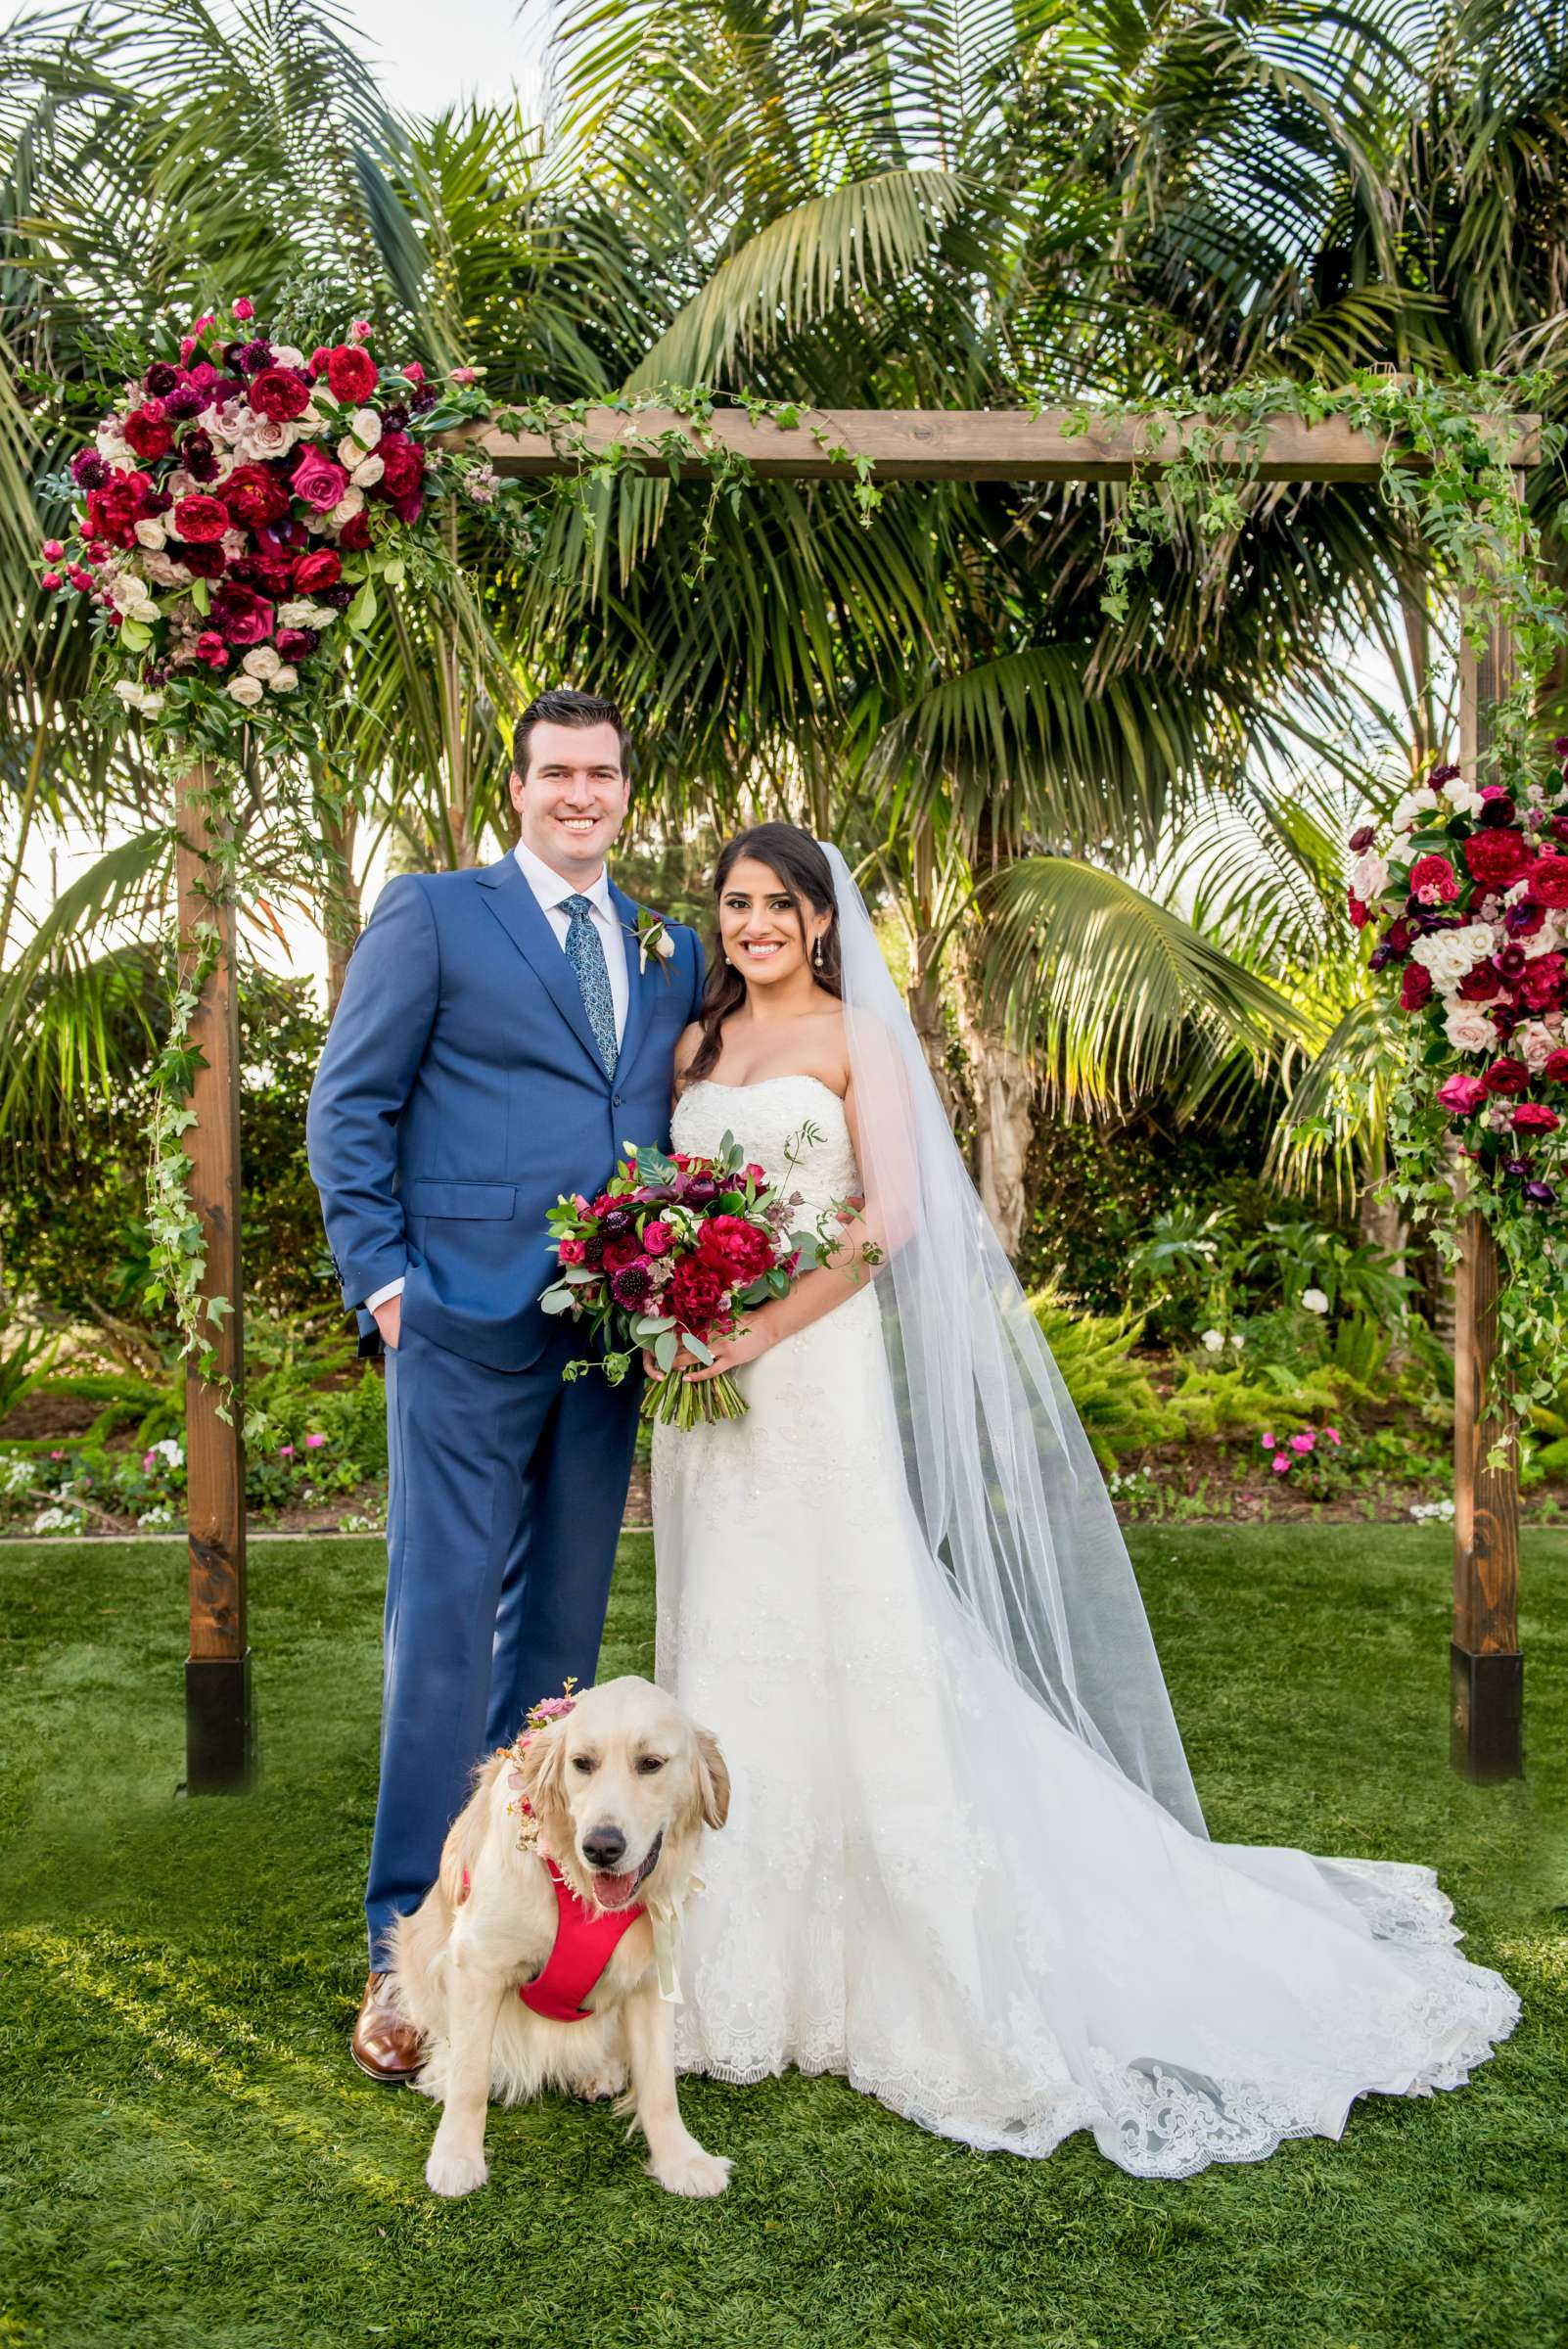 Cape Rey Carlsbad, A Hilton Resort Wedding, Jasmine and Kyle Wedding Photo #106 by True Photography